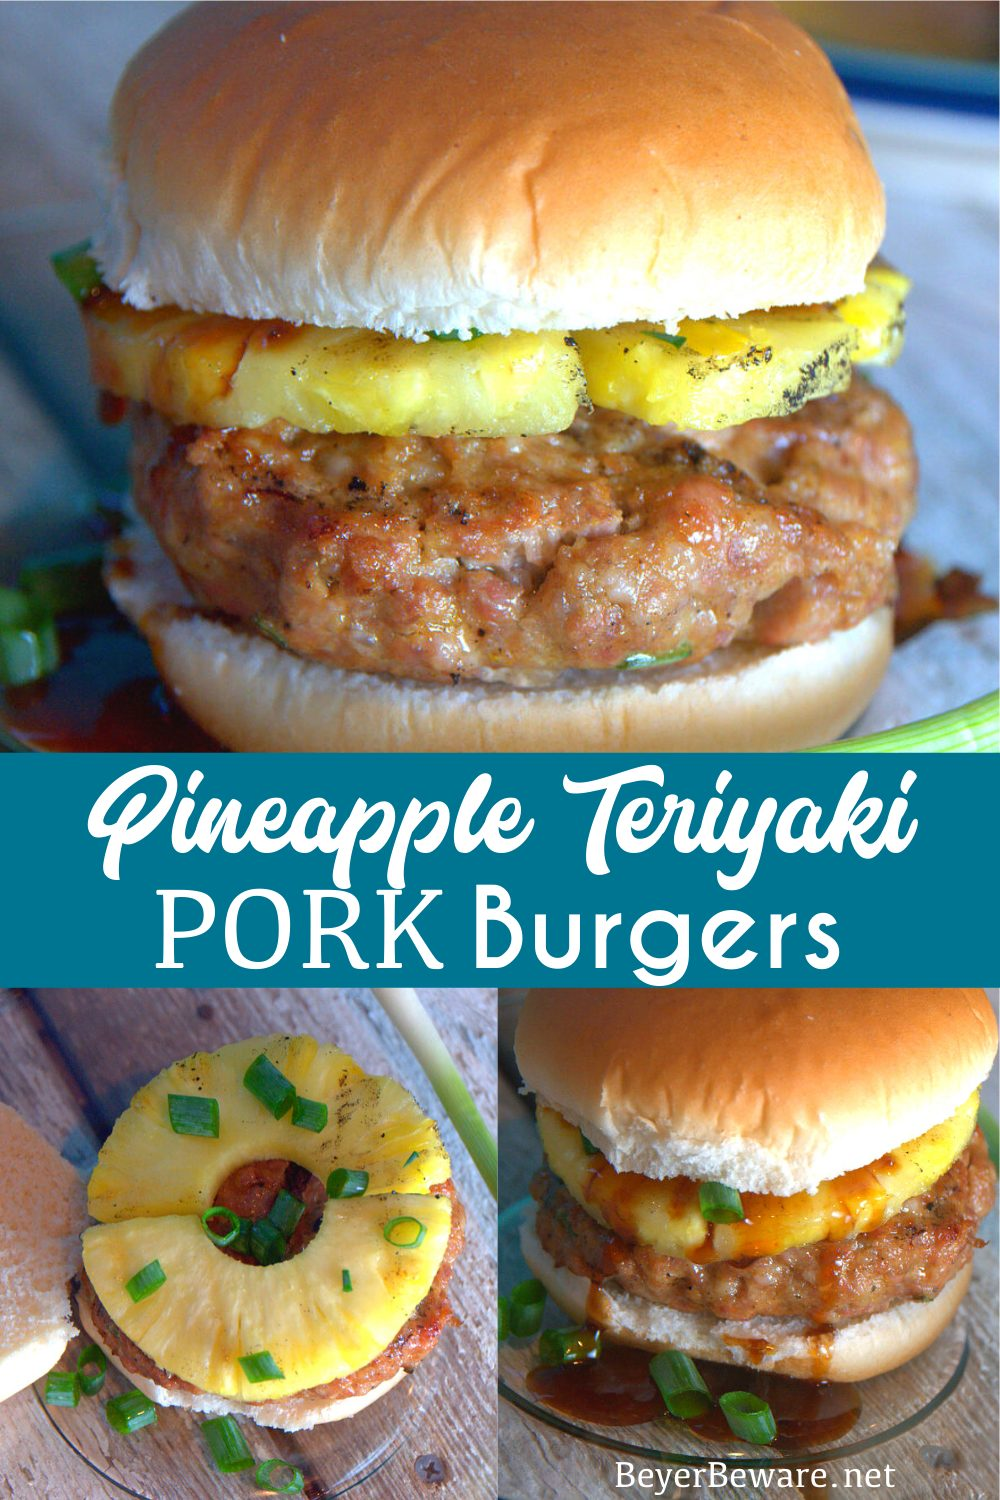 This grilled pineapple pork burger recipe mixes Asian seasonings with ground pork then topped with a slice of grilled pineapple and a teriyaki sauce.